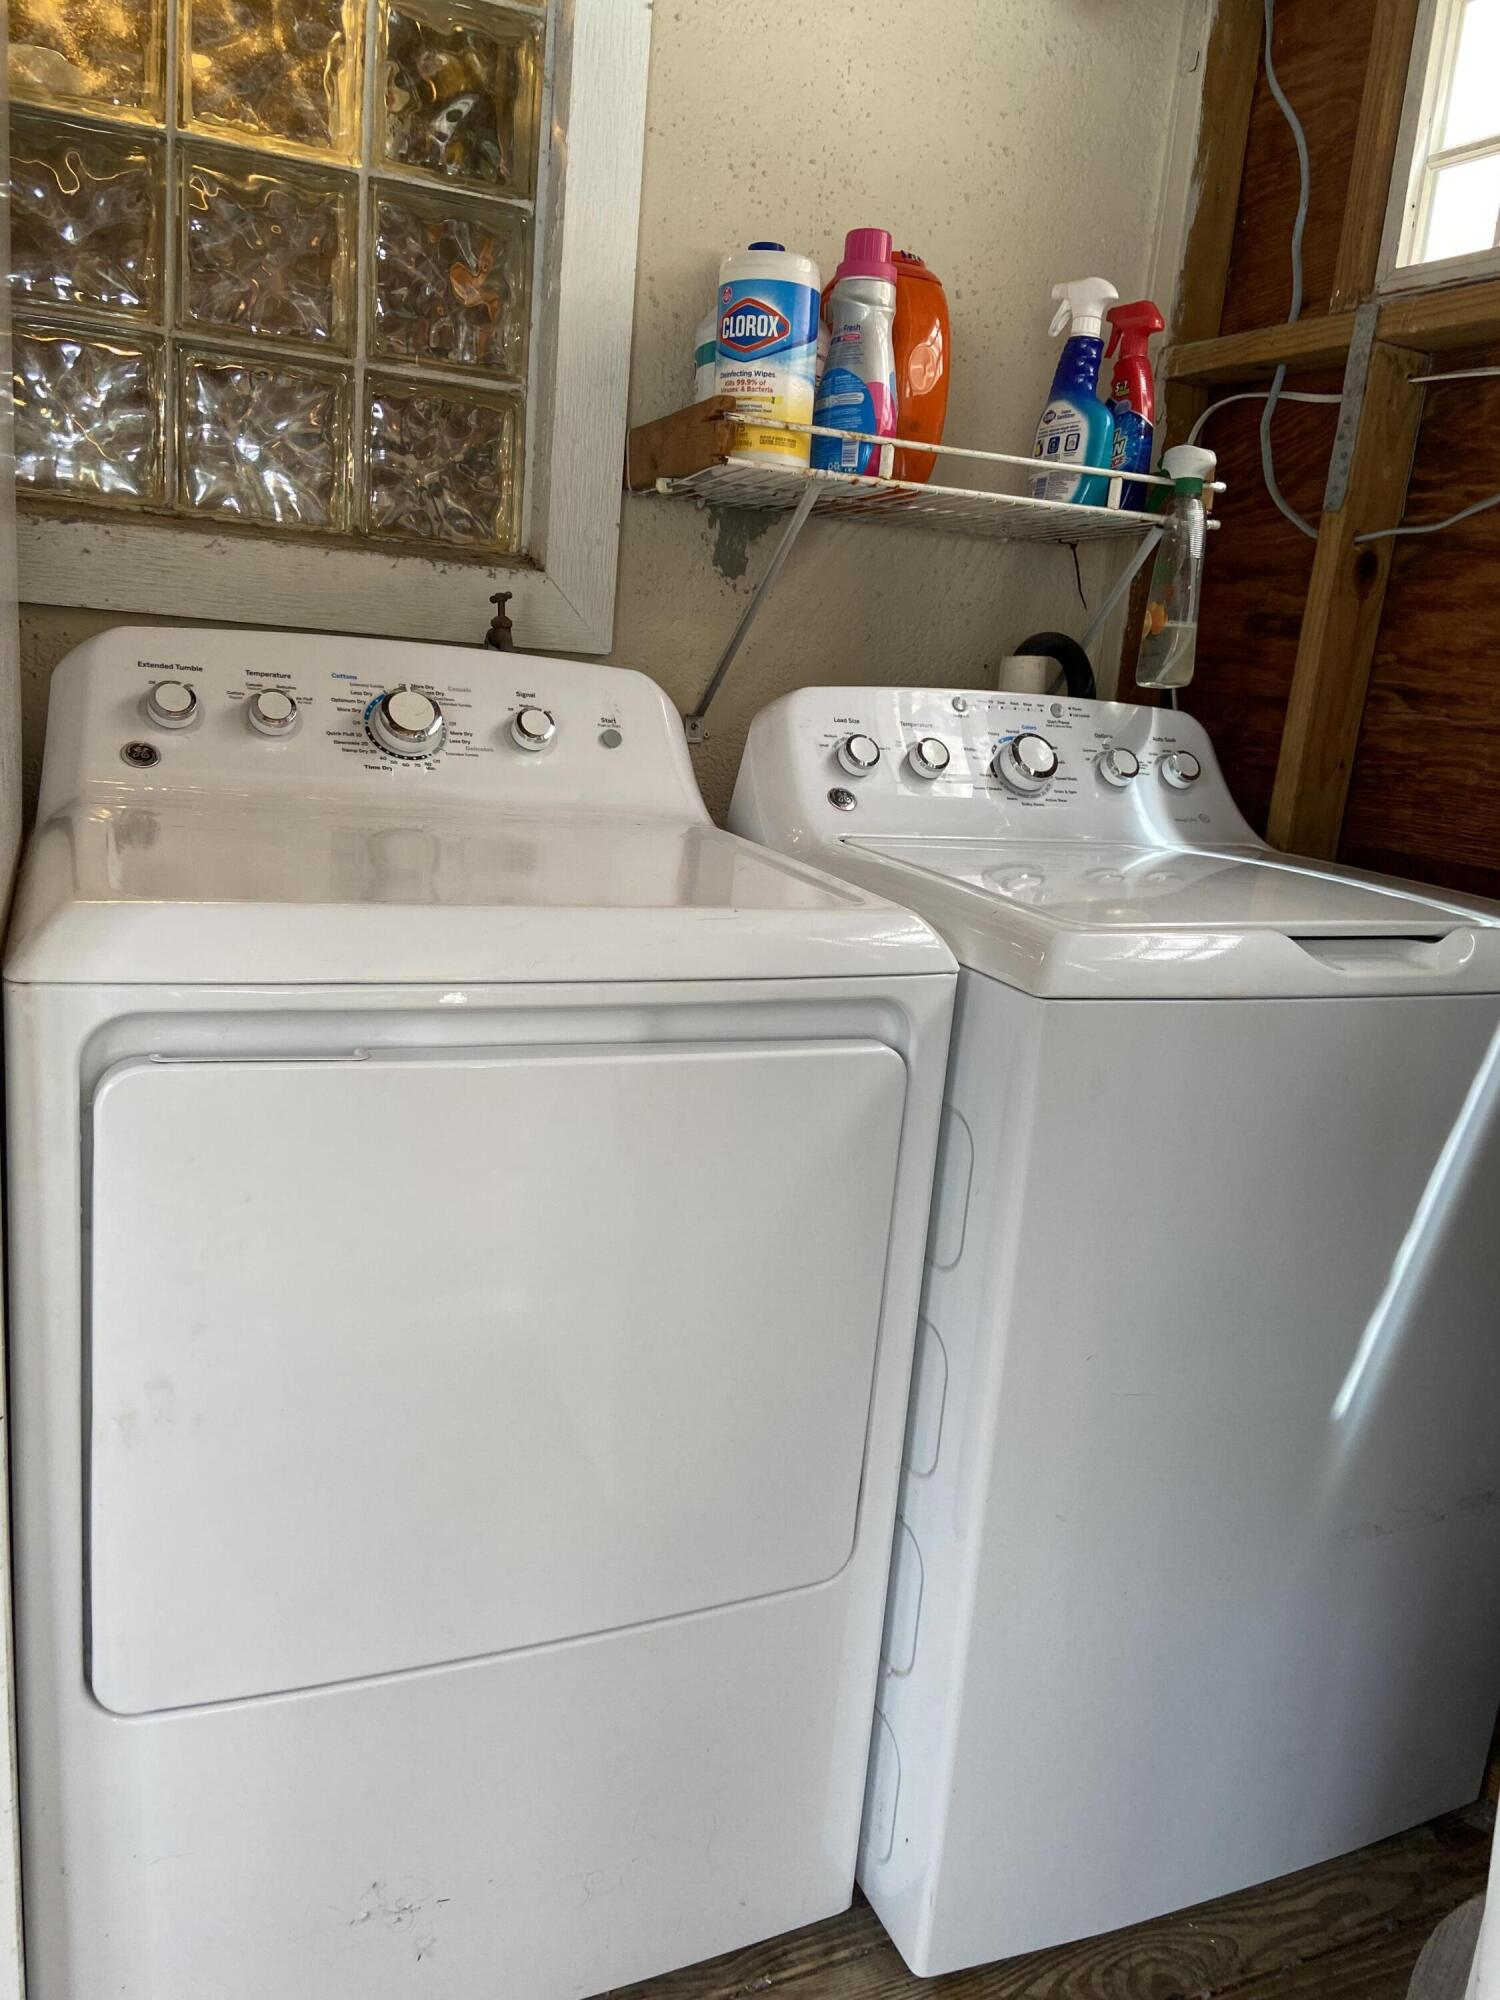 FULL SIZED WASHER & GAS DRYER